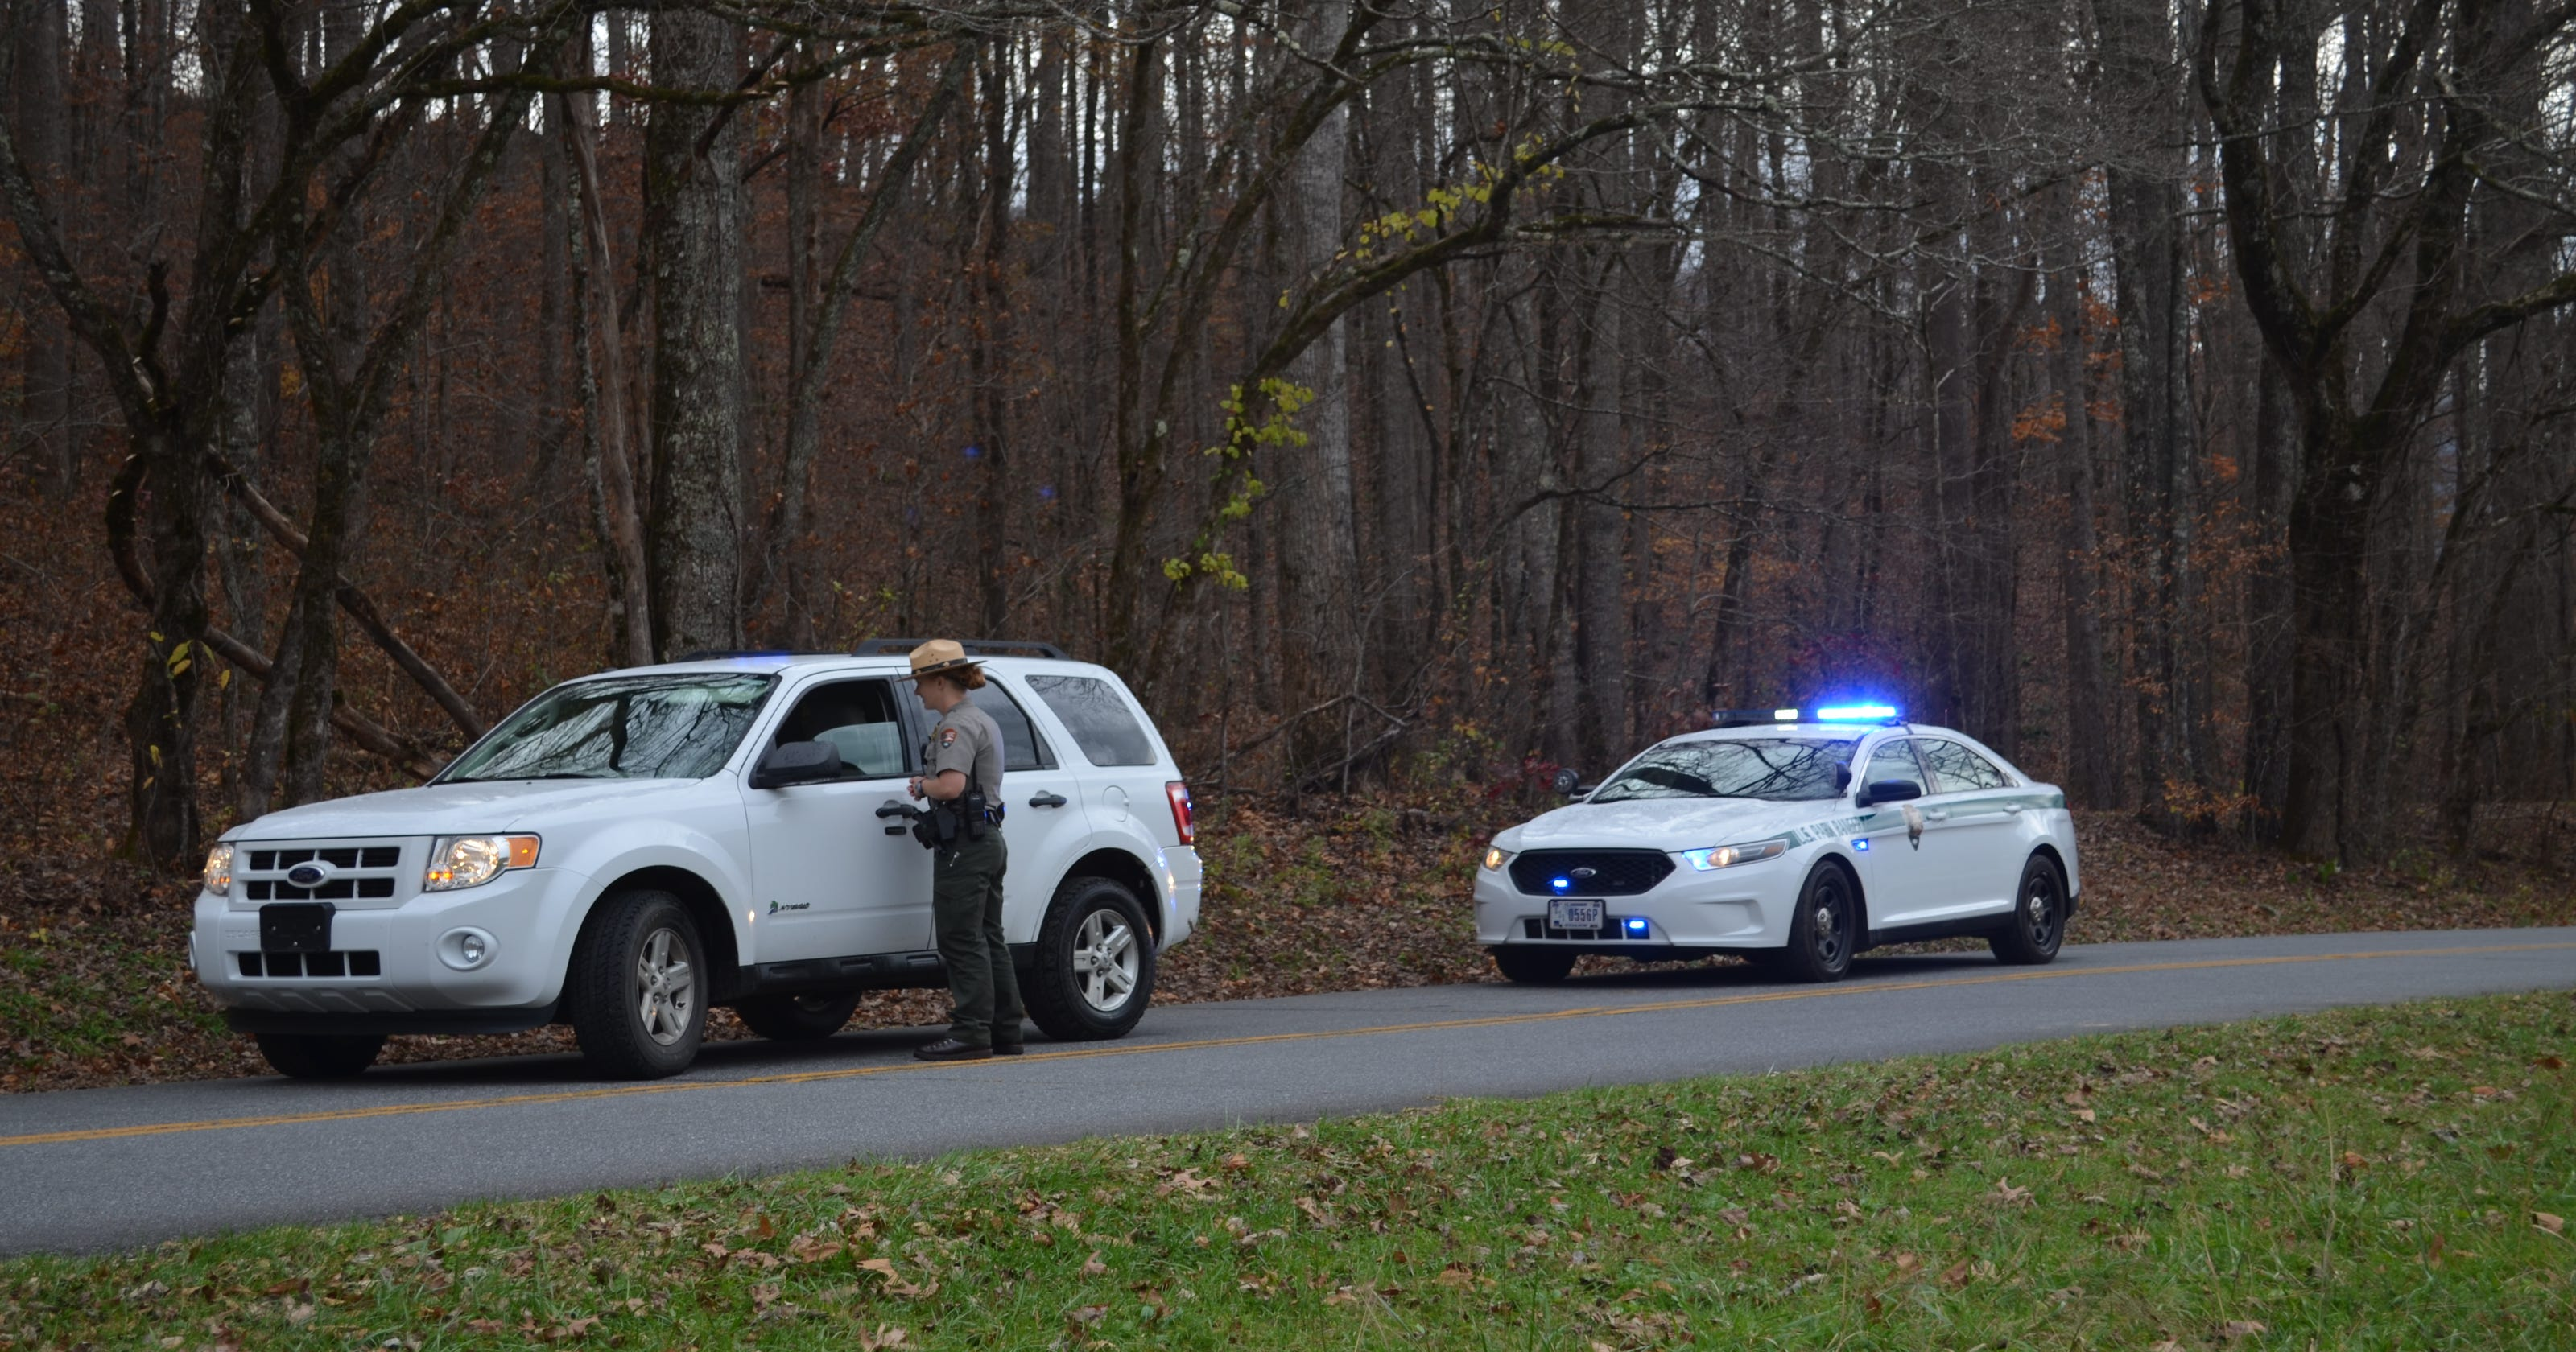 Man dies in collision in Great Smokies in 4th fatality this year